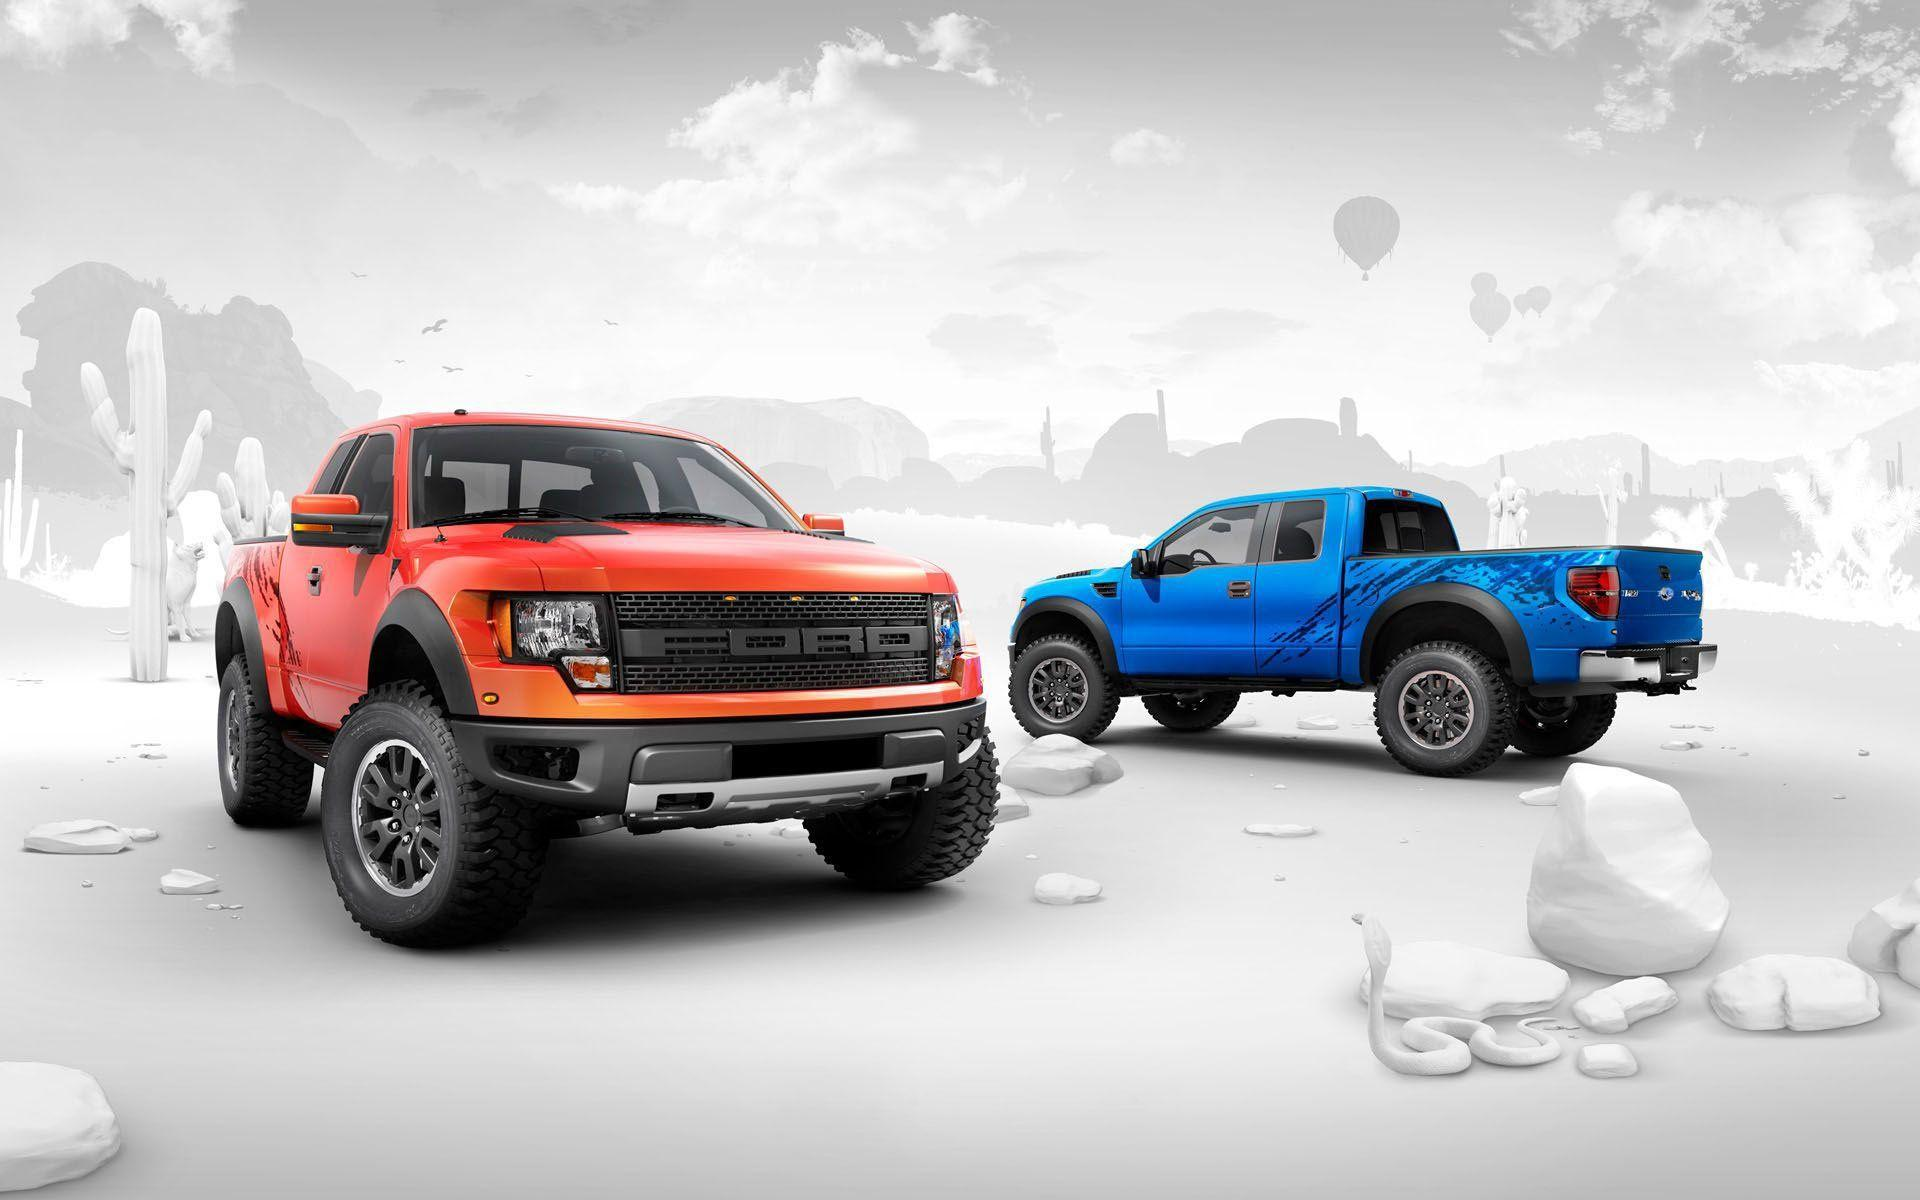 Ford Raptor Wallpaper 17 - 1920 X 1200 | stmed.net